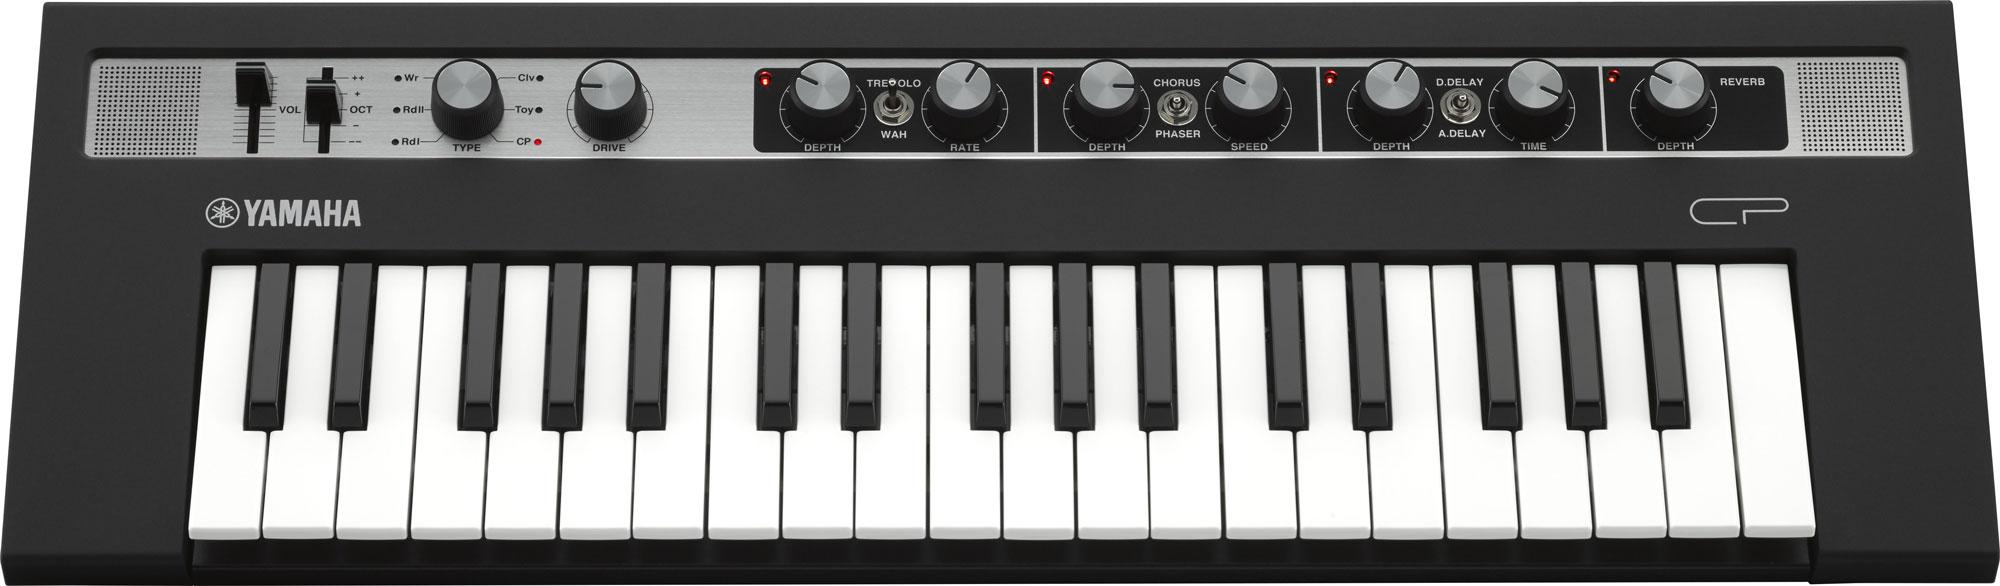 Synthesizer - Yamaha Reface CP Electric Piano schwarz - Onlineshop Musikhaus Kirstein